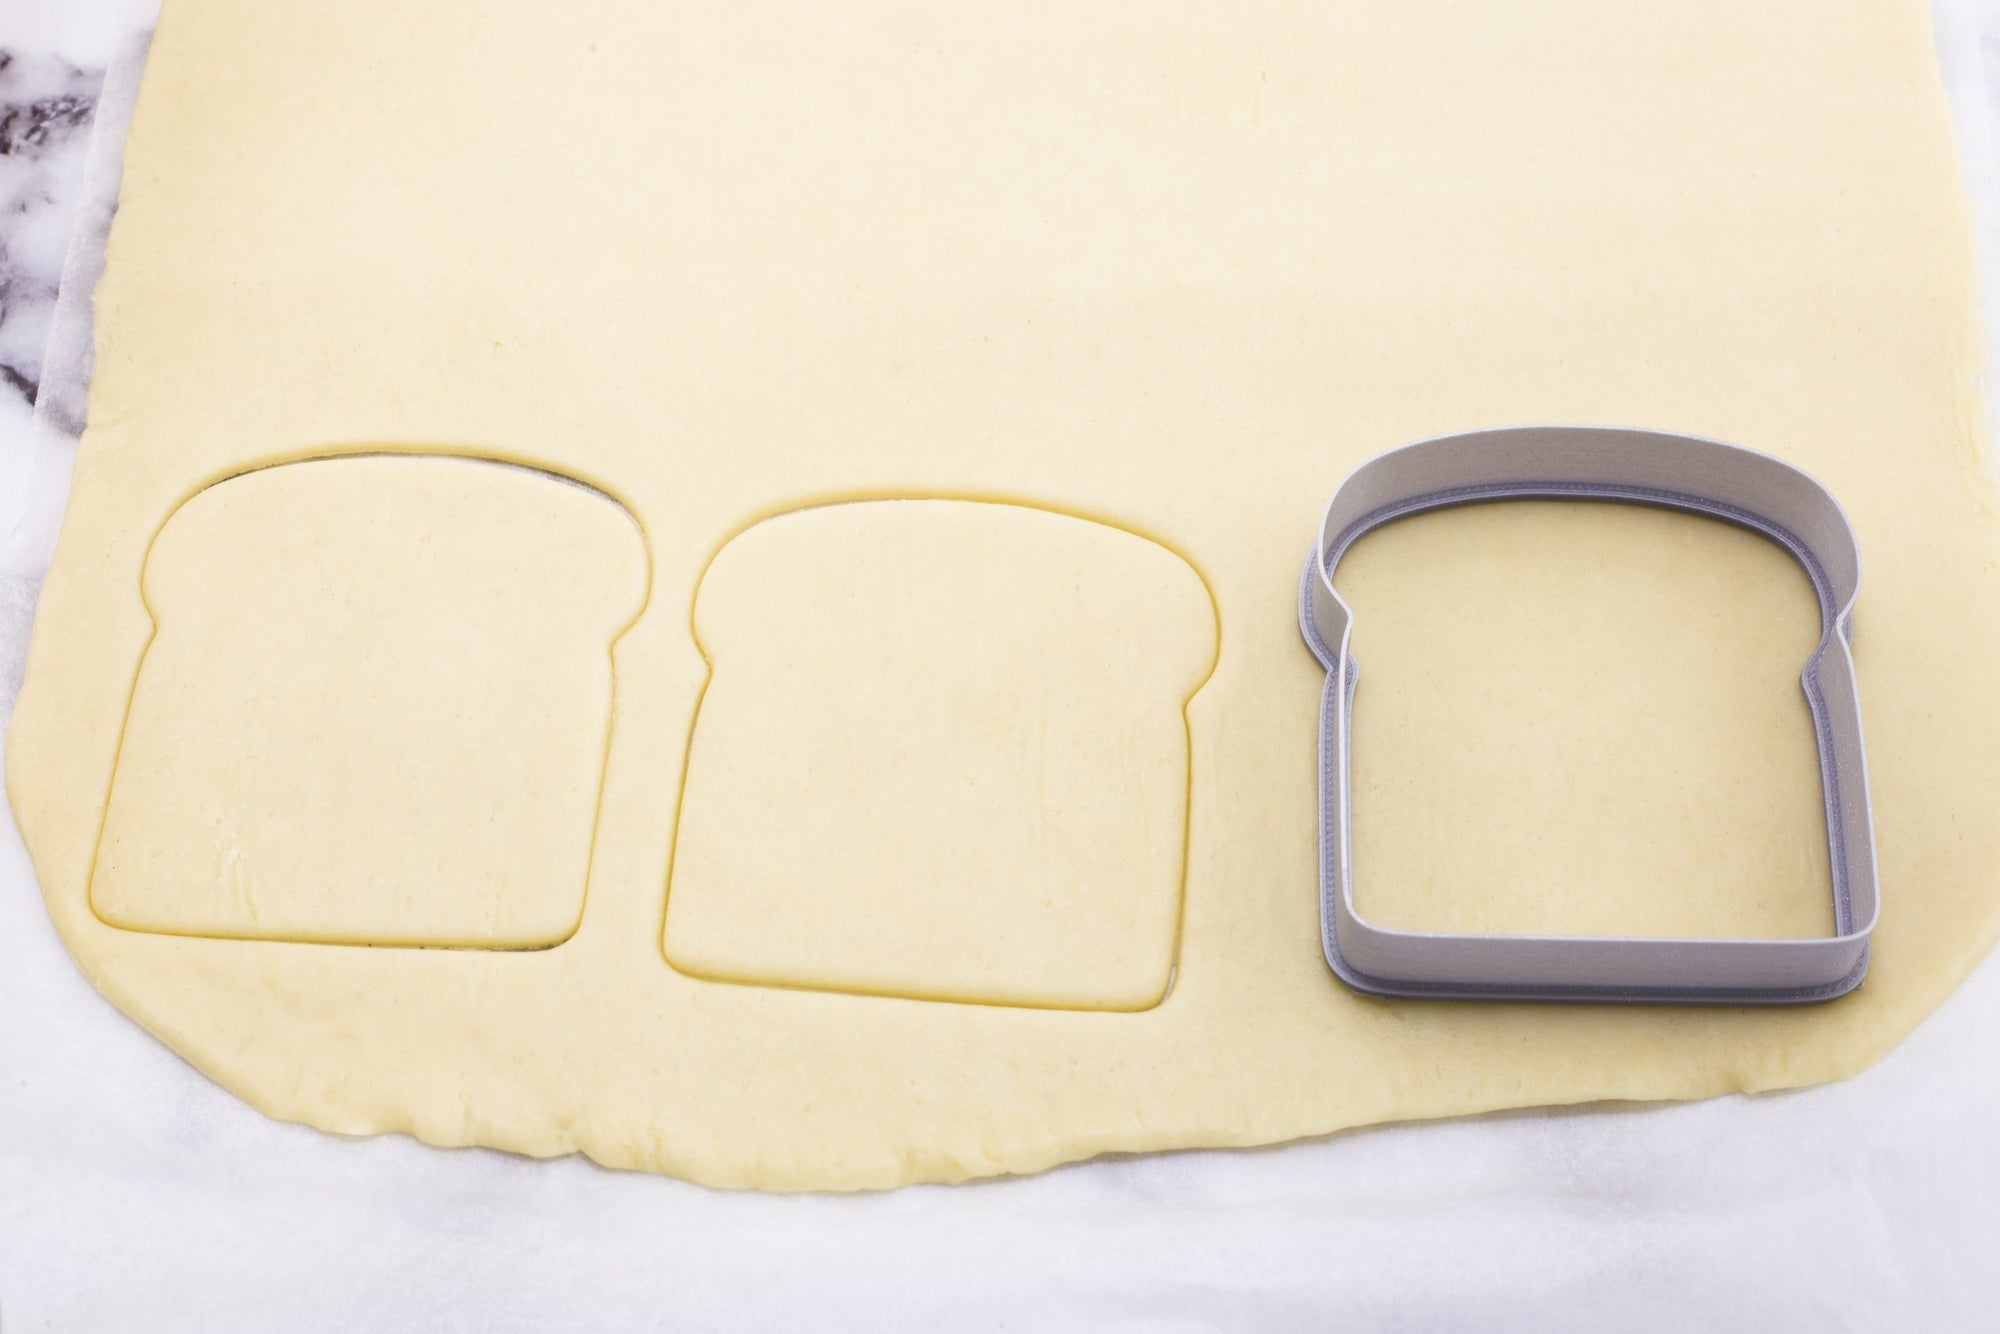 Toast Bread Slice Cookie Cutter - Dolce3D